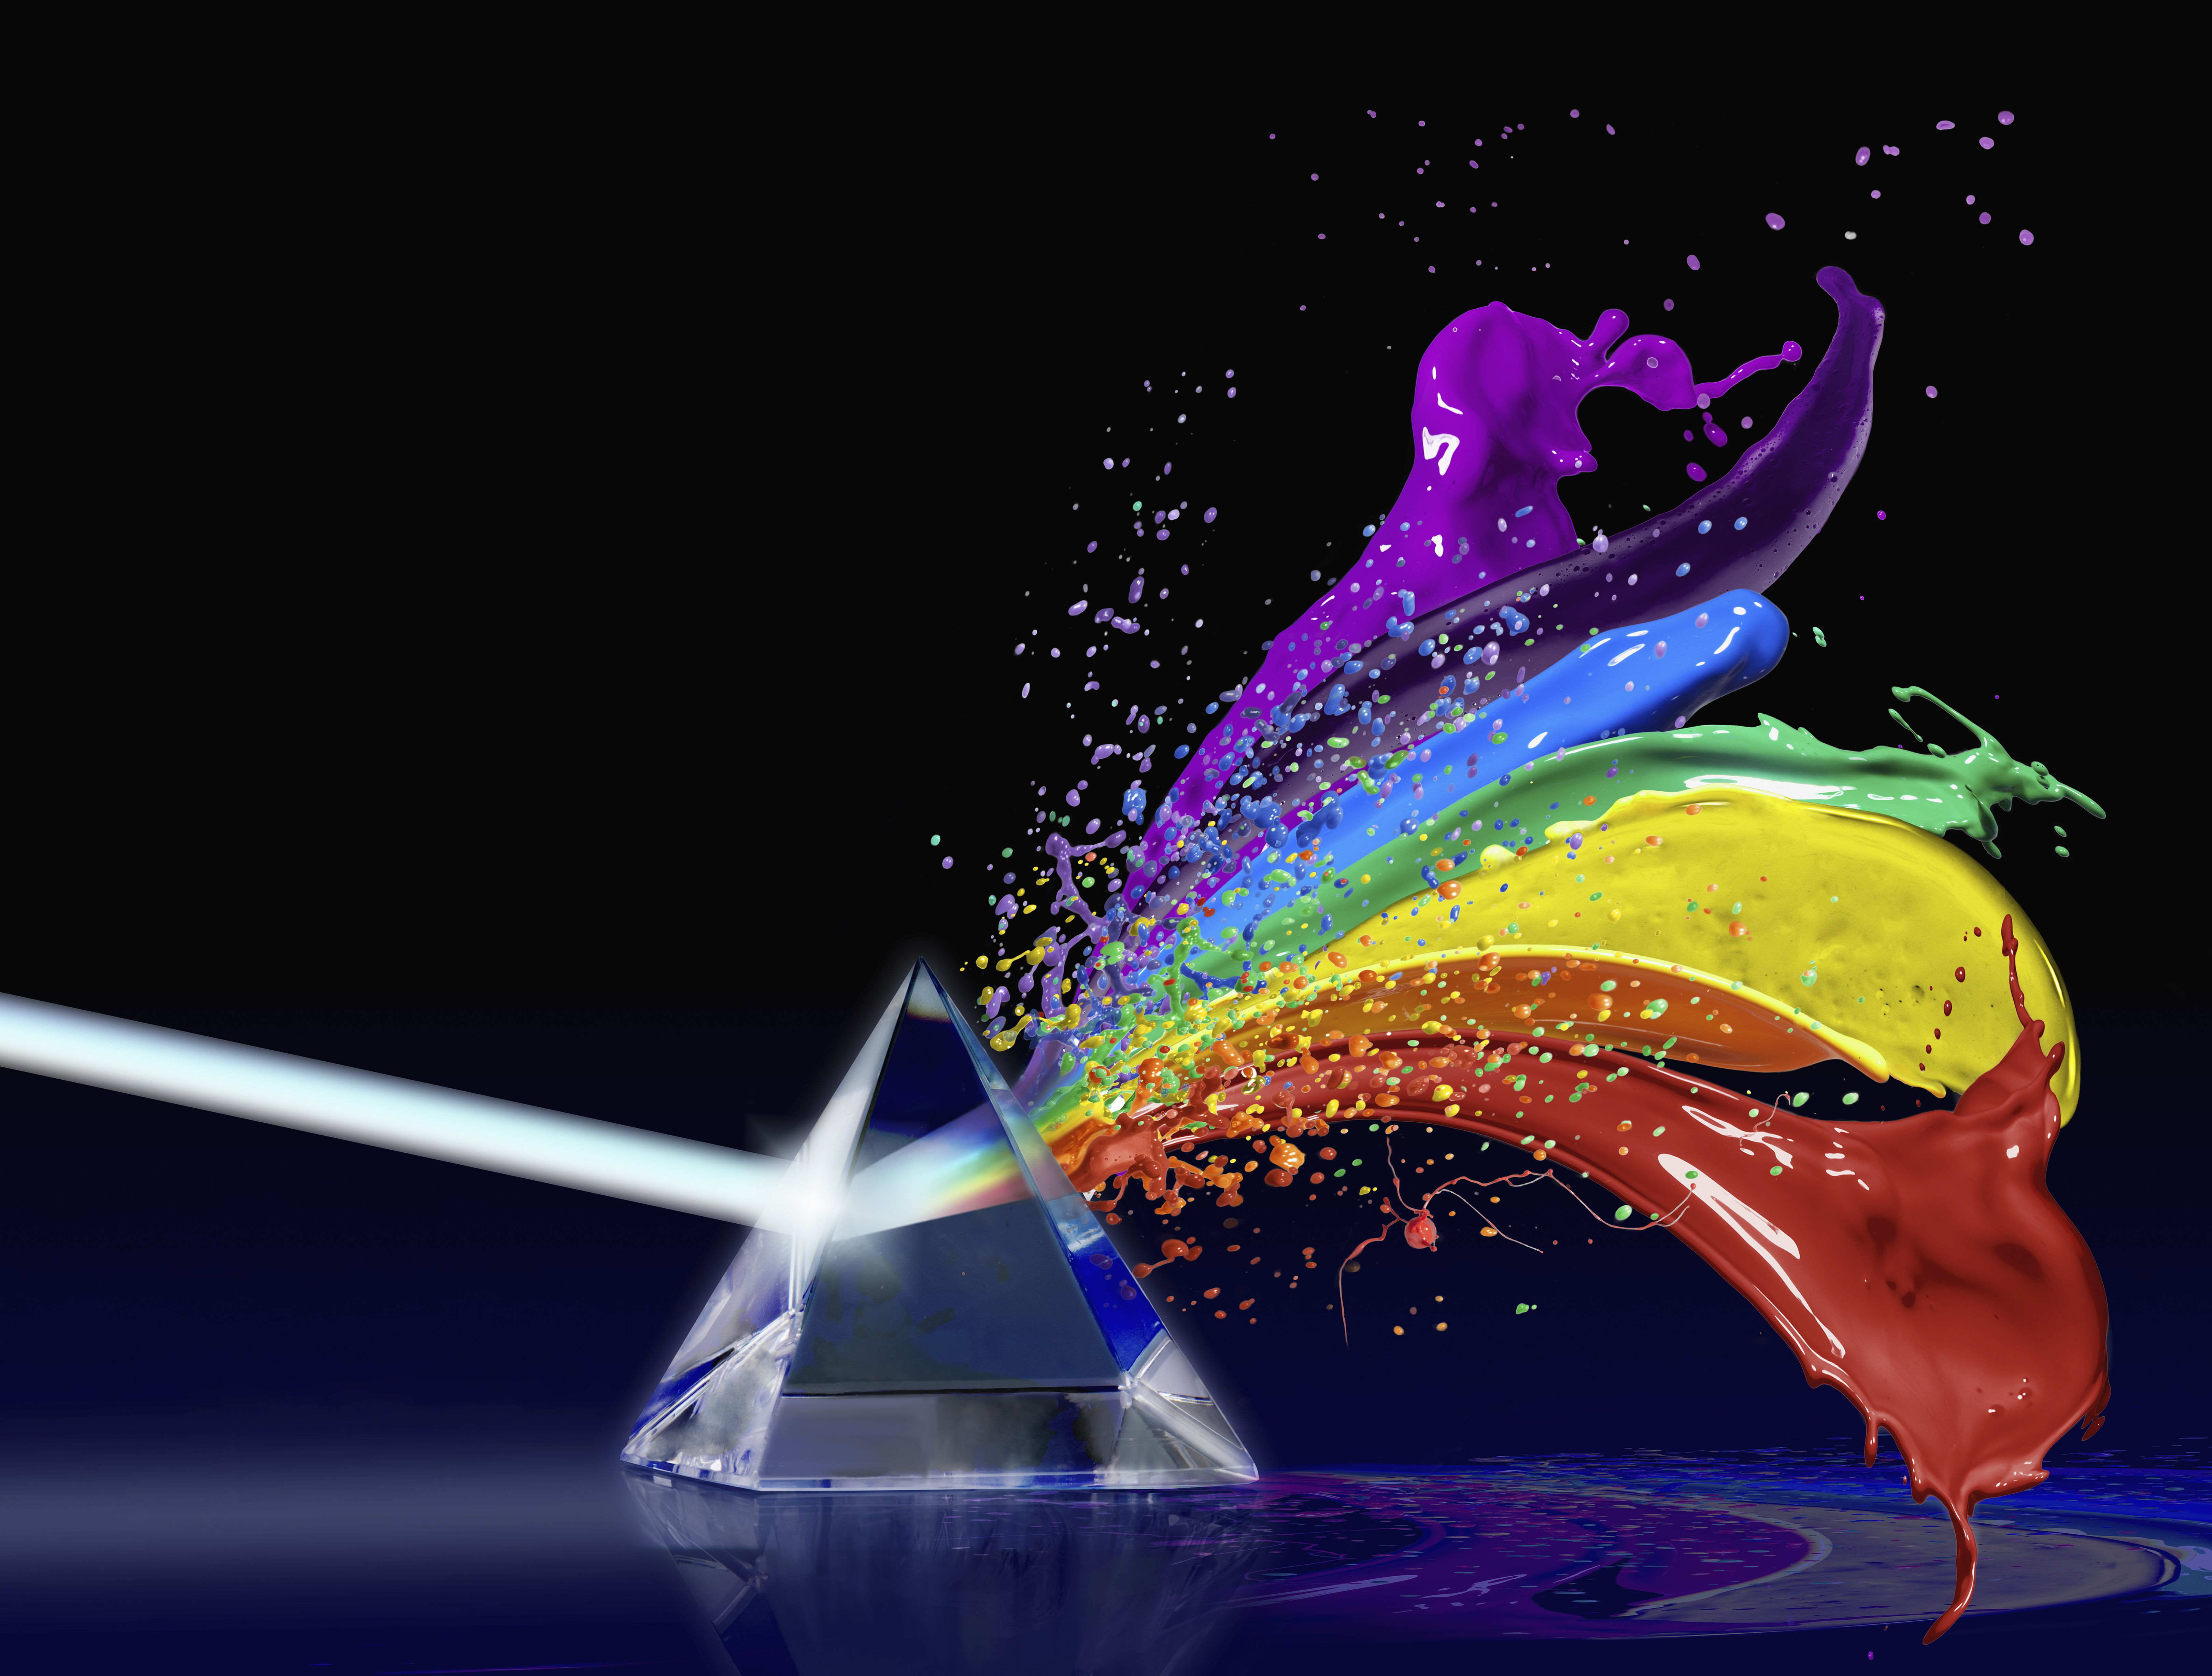 Light going through prism and coming out as splashes of paint in rainbow colors